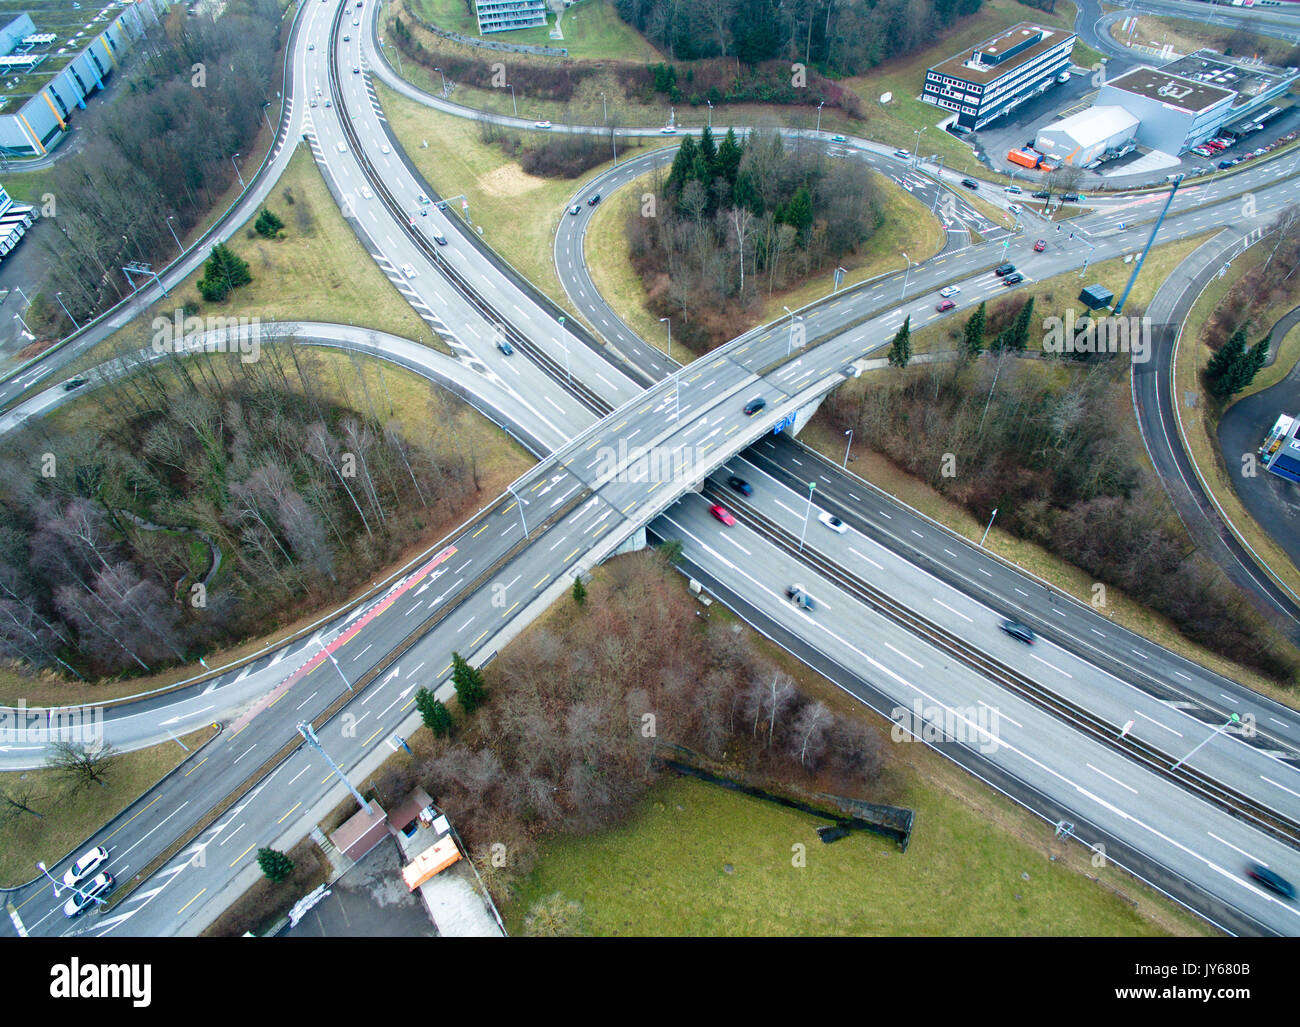 Luftbild Autbahnkreuz *** Local Caption *** Highway, Road, Traffic, Transportation, Switzerland, Aerial View, aerial photography, from above, aerial p - Stock Image